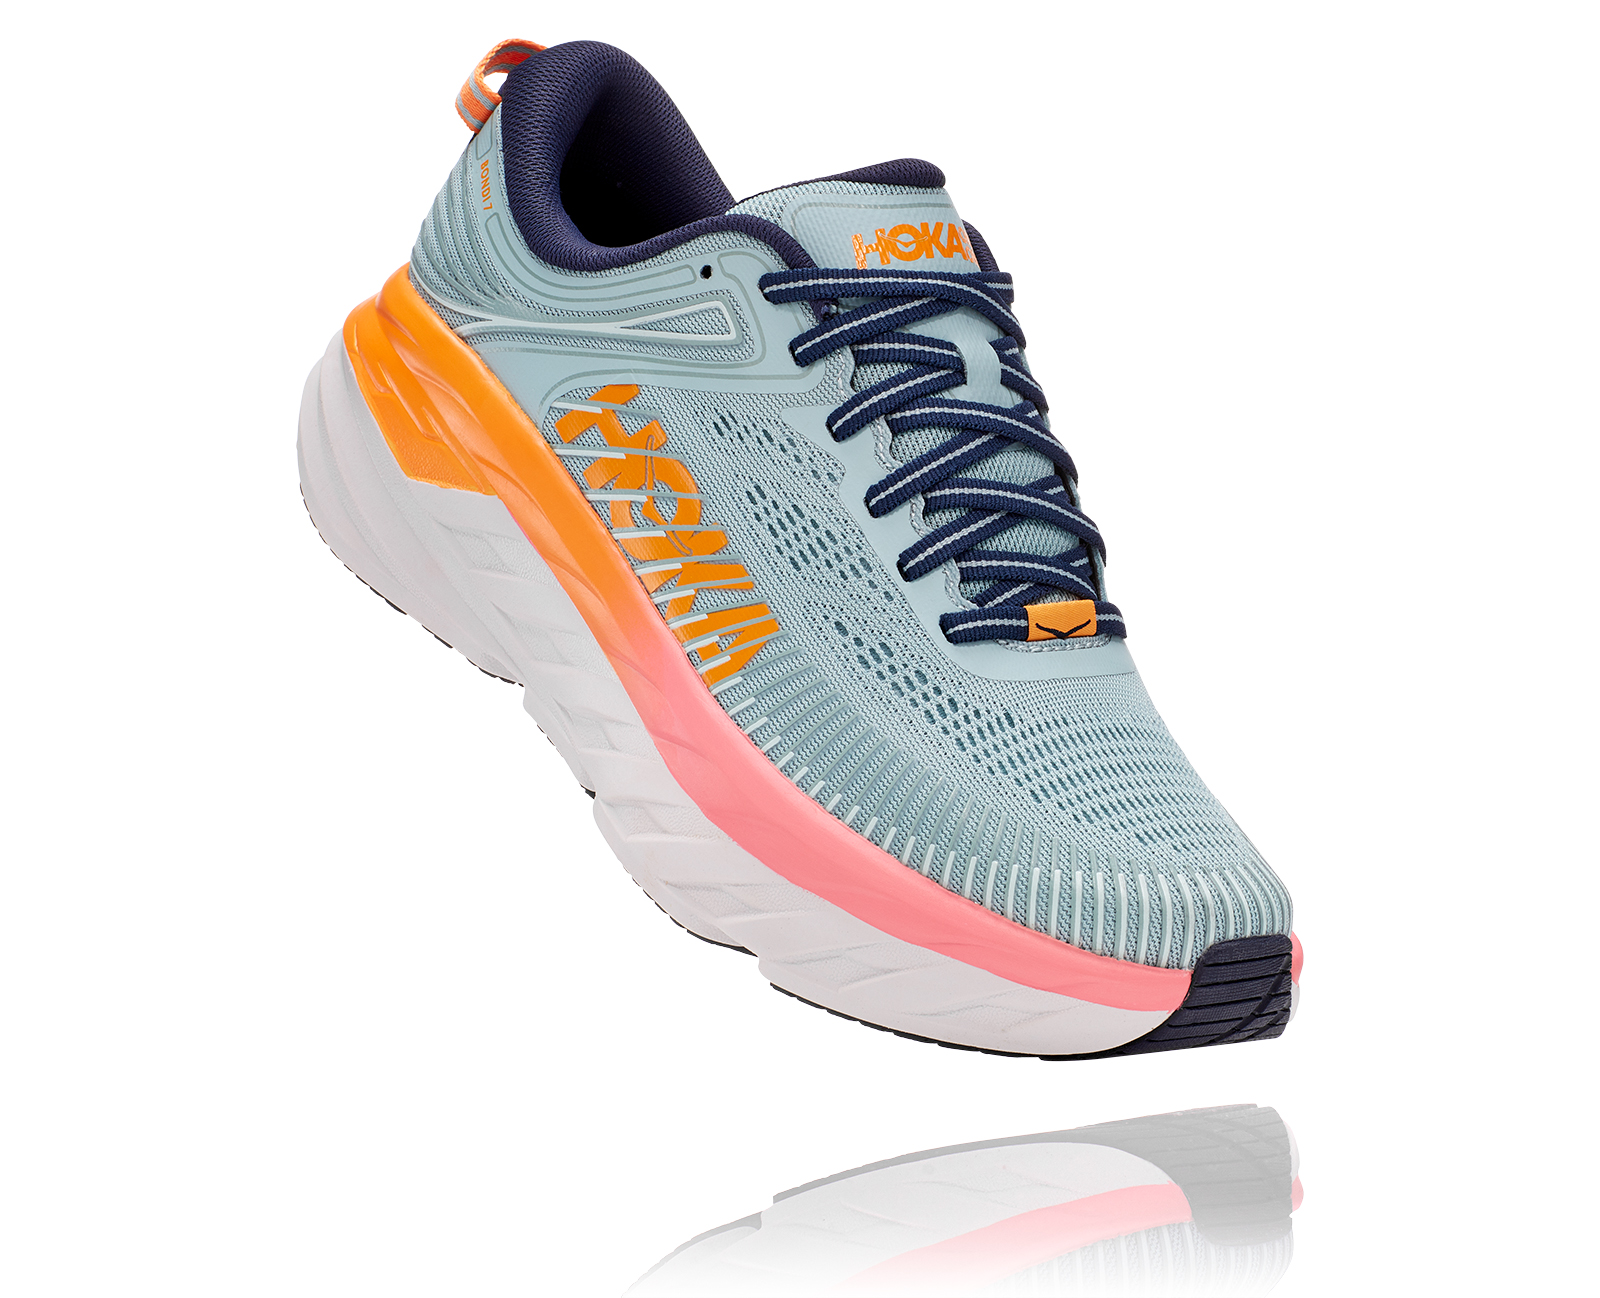 Hoka One One Womens Bondi 7